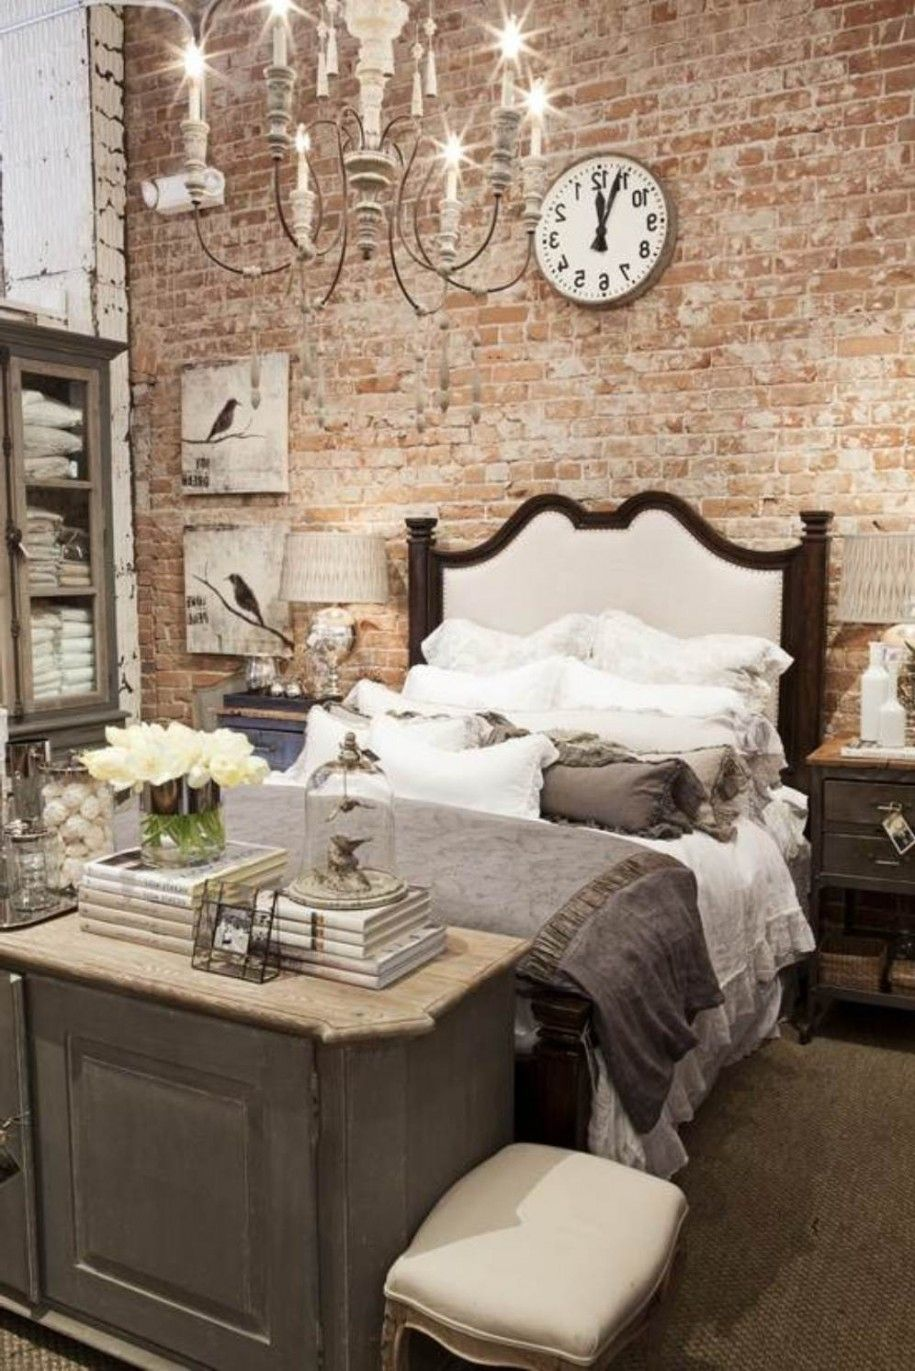 Romantic bedroom decorating ideas bedroom rustic design for Exposed brick wall living room ideas